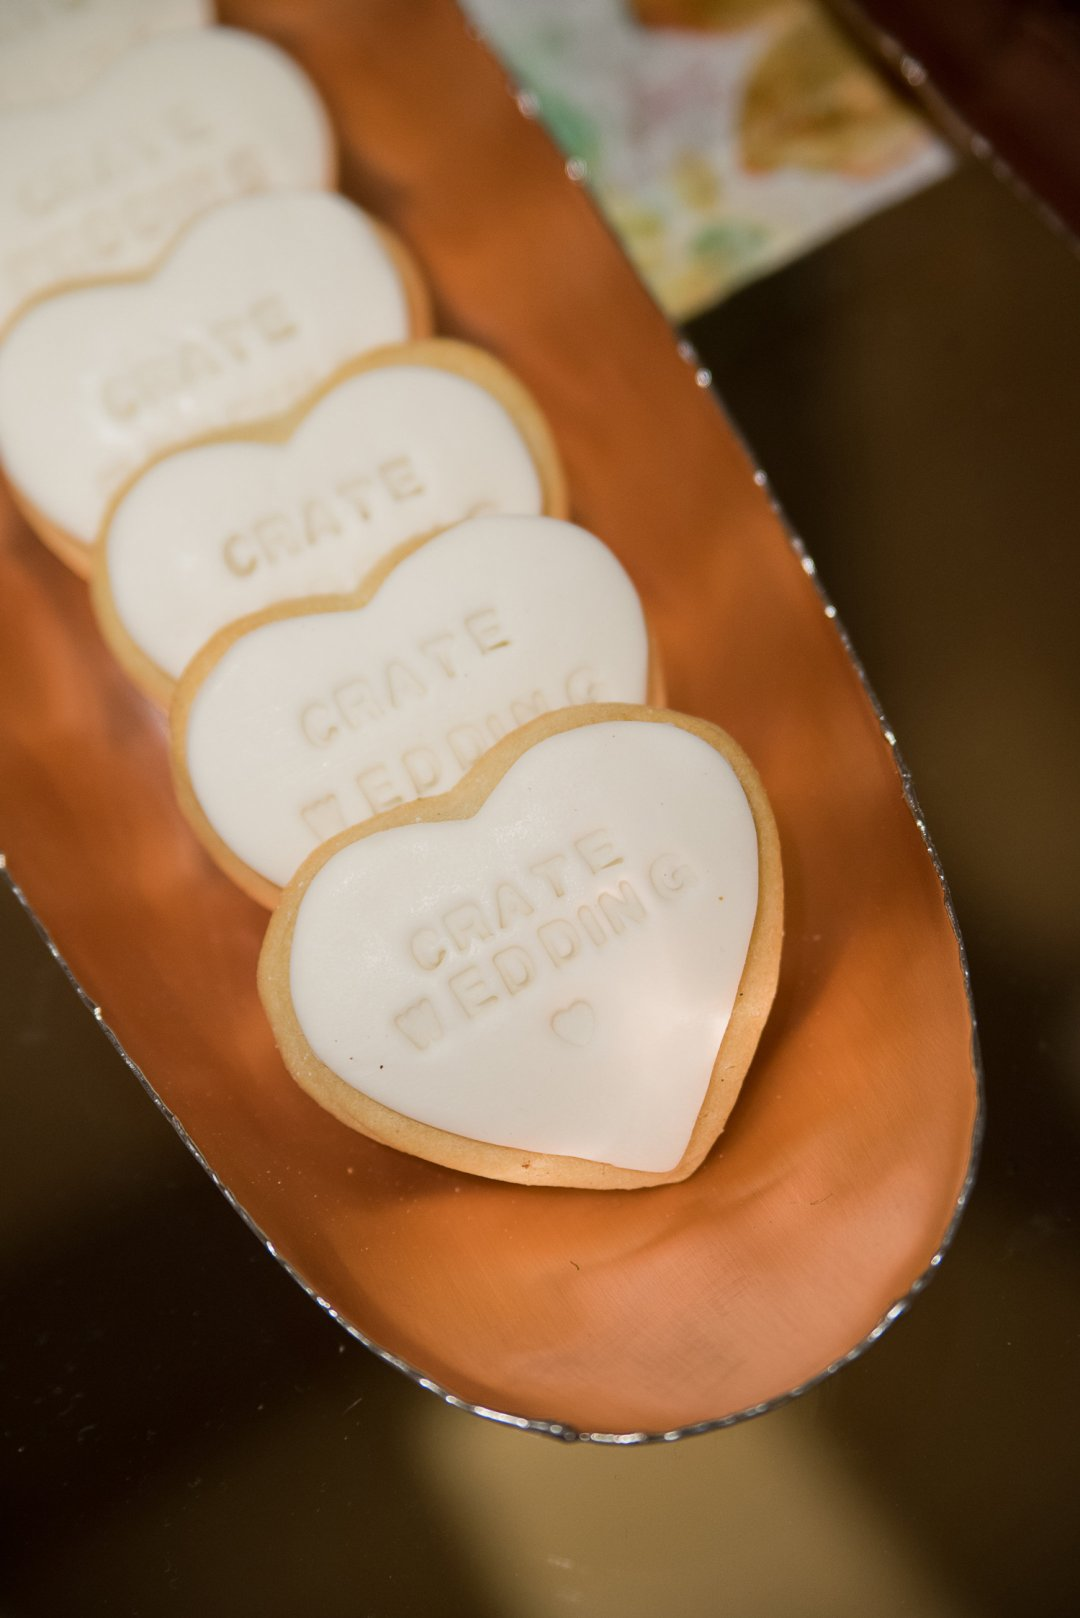 Crate Wedding cookies in copper tray